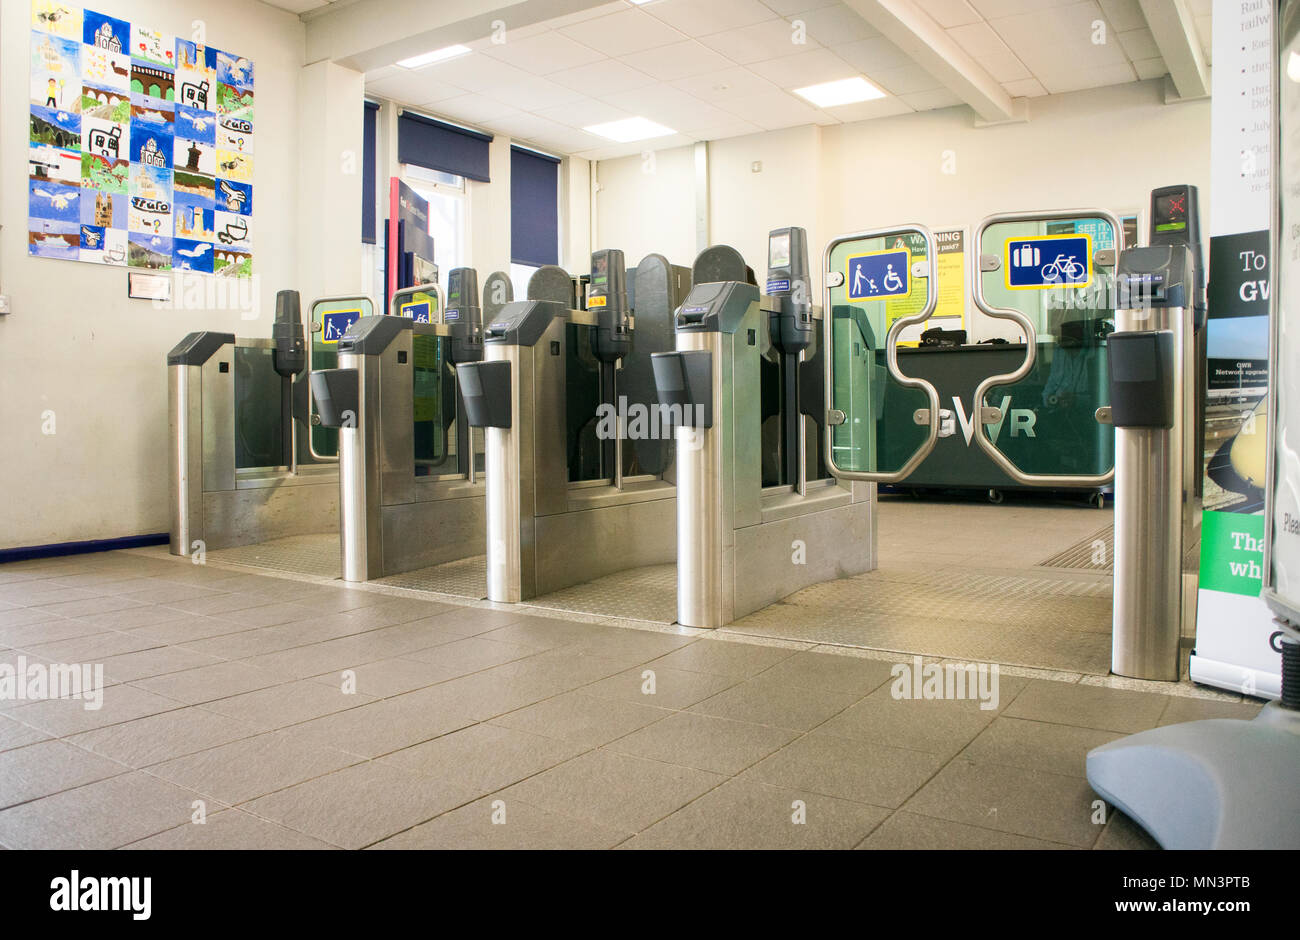 Ticket barriers at an English railway station - John Gollop - Stock Image